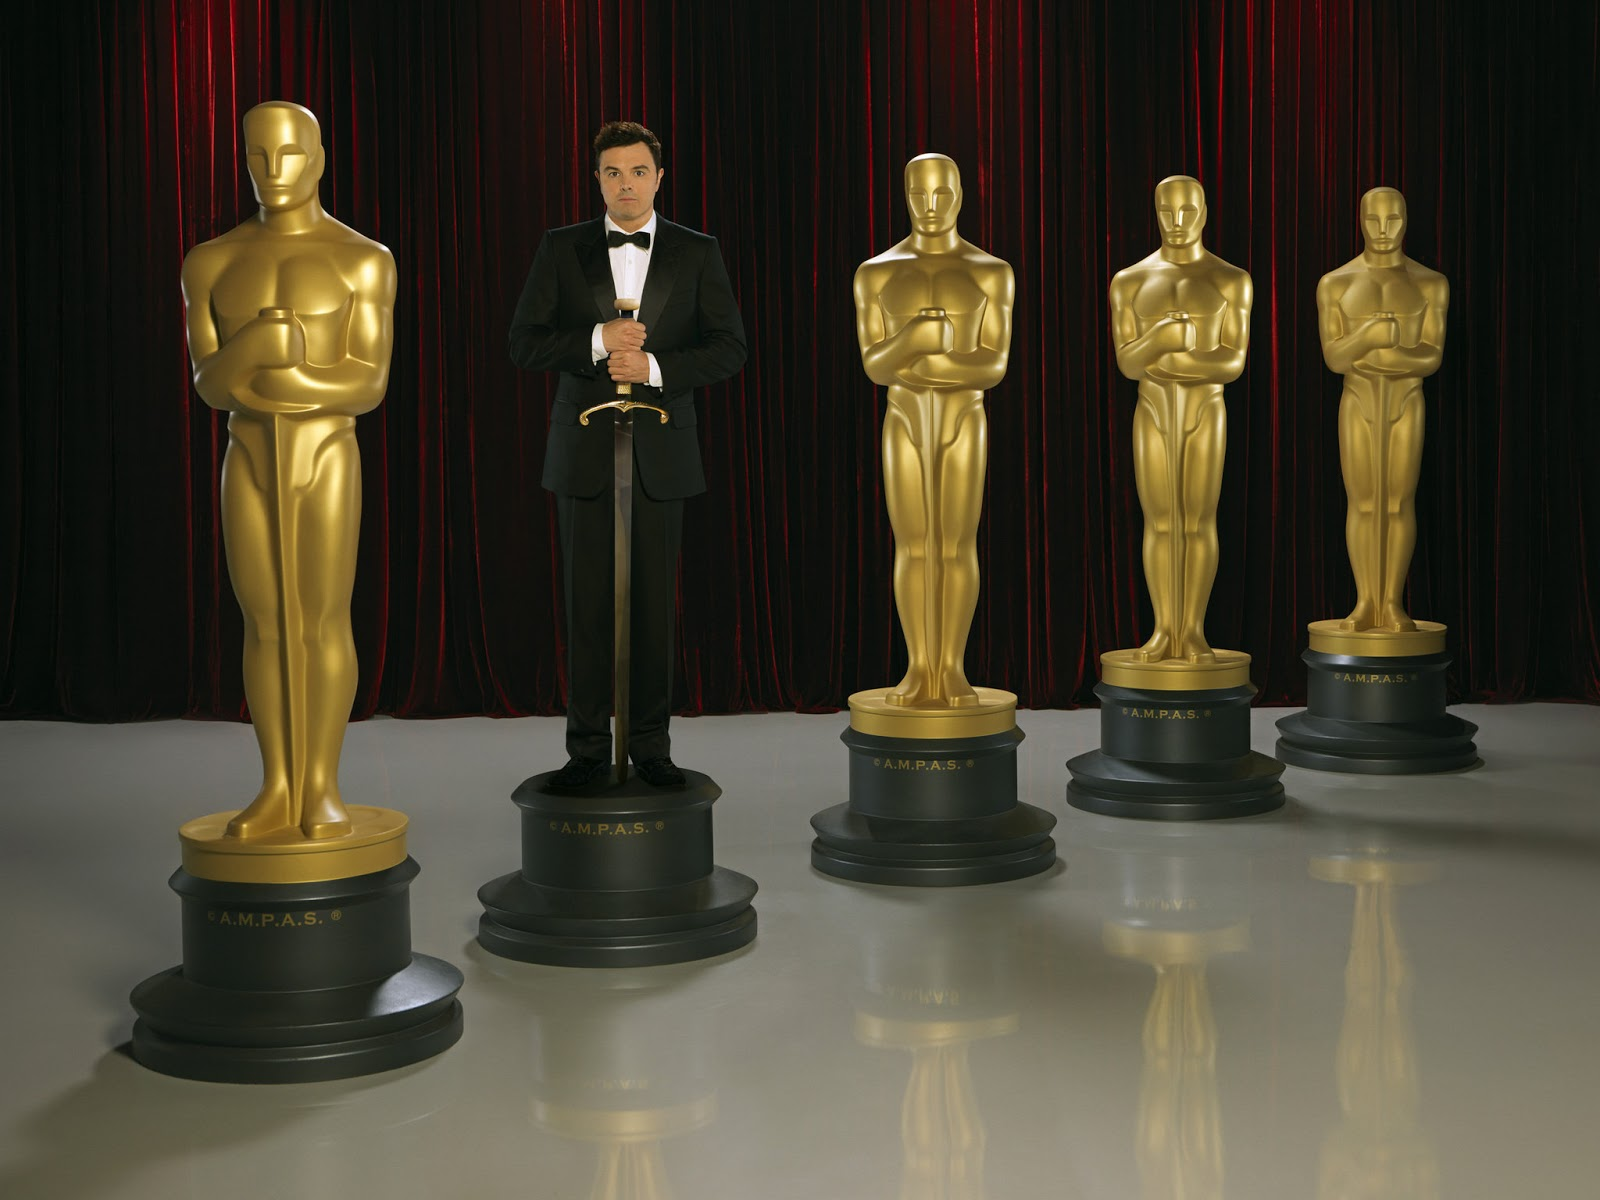 the one movie blog 2013 it seems like only yesterday i was throwing a half eaten apple at the screen when meryl streep won the best actress oscar over viola davis but yet another